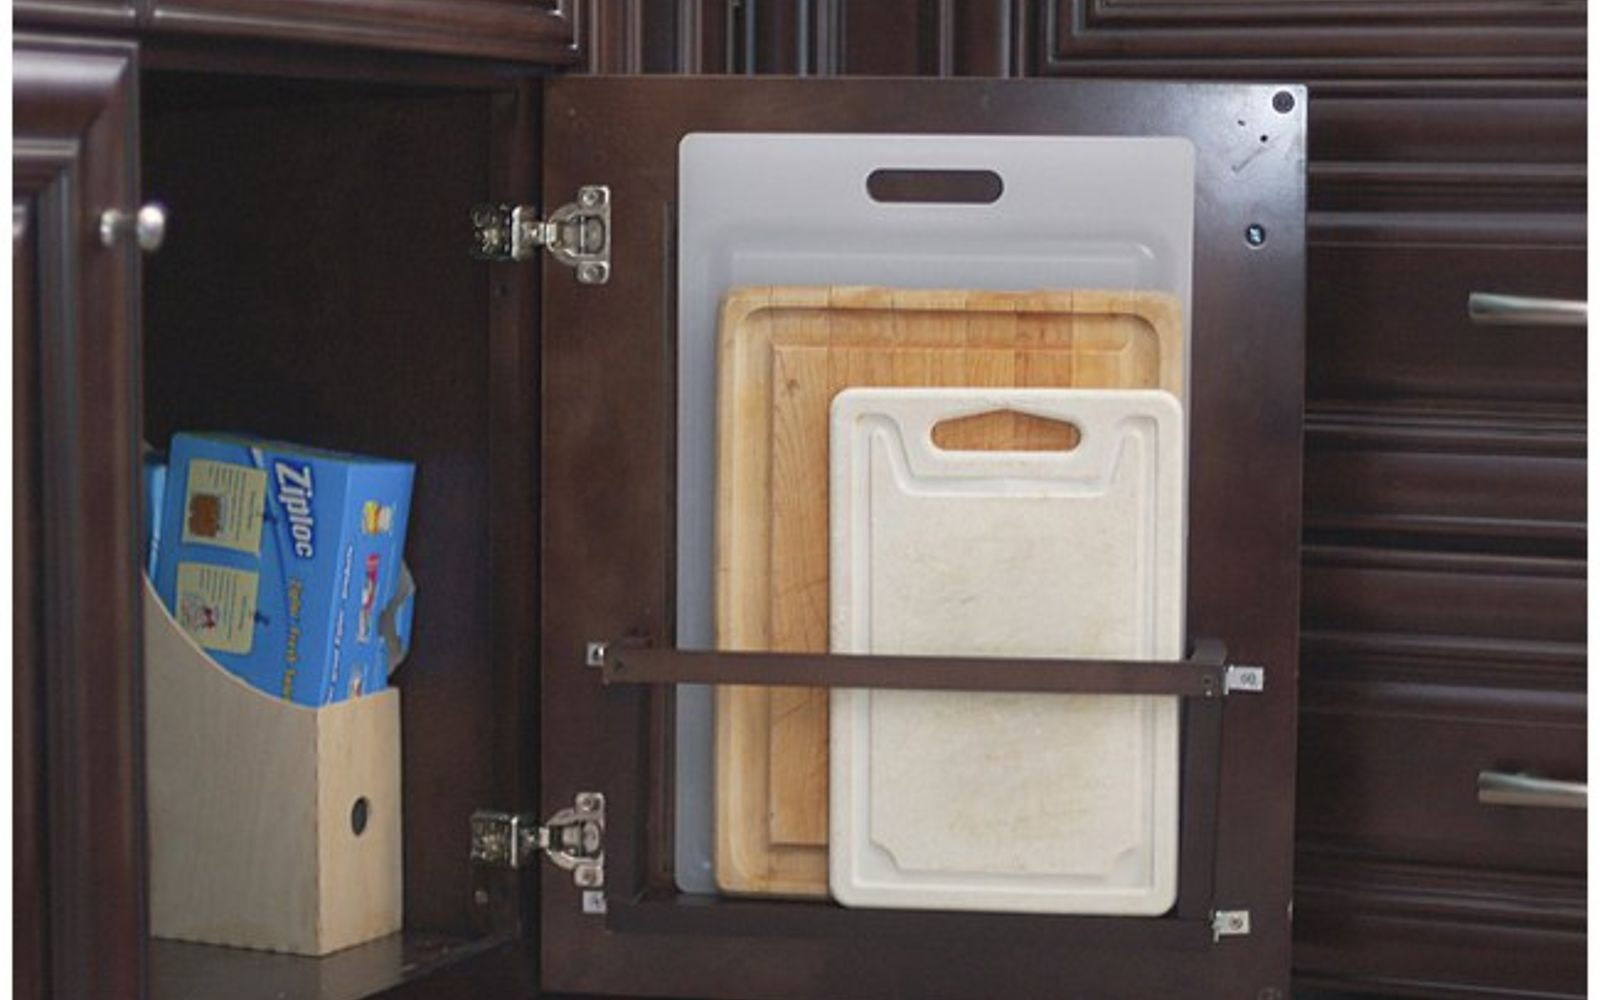 s 31 storage hacks that will instantly declutter your kitchen, Store cutting boards on your cabinet door